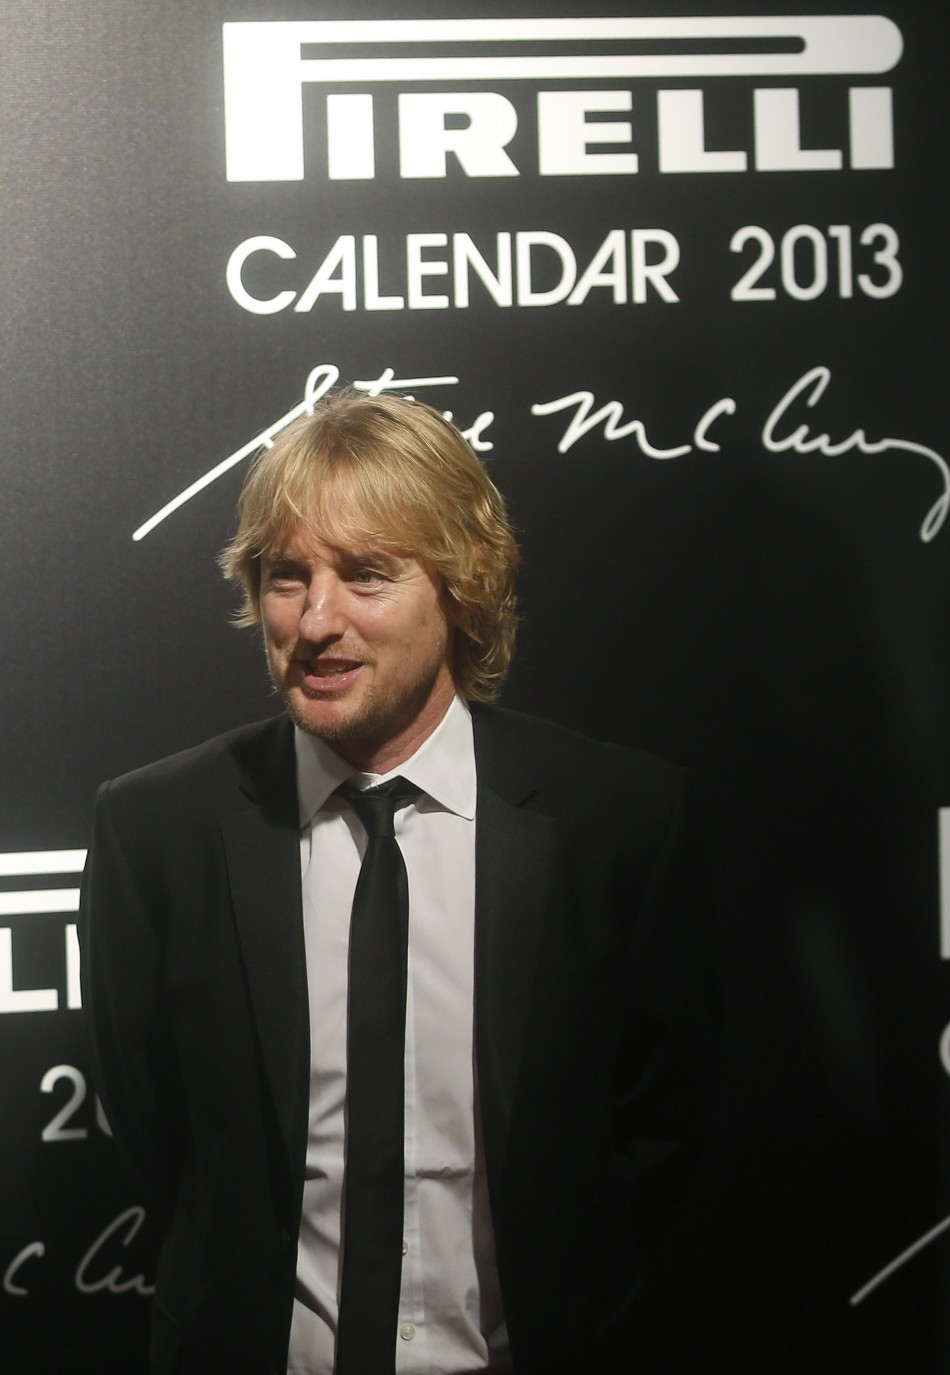 U.S. actor Owen Wilson poses during the arrivals for the launch of the Pirelli Calendar 2013 in Rio de Janeiro